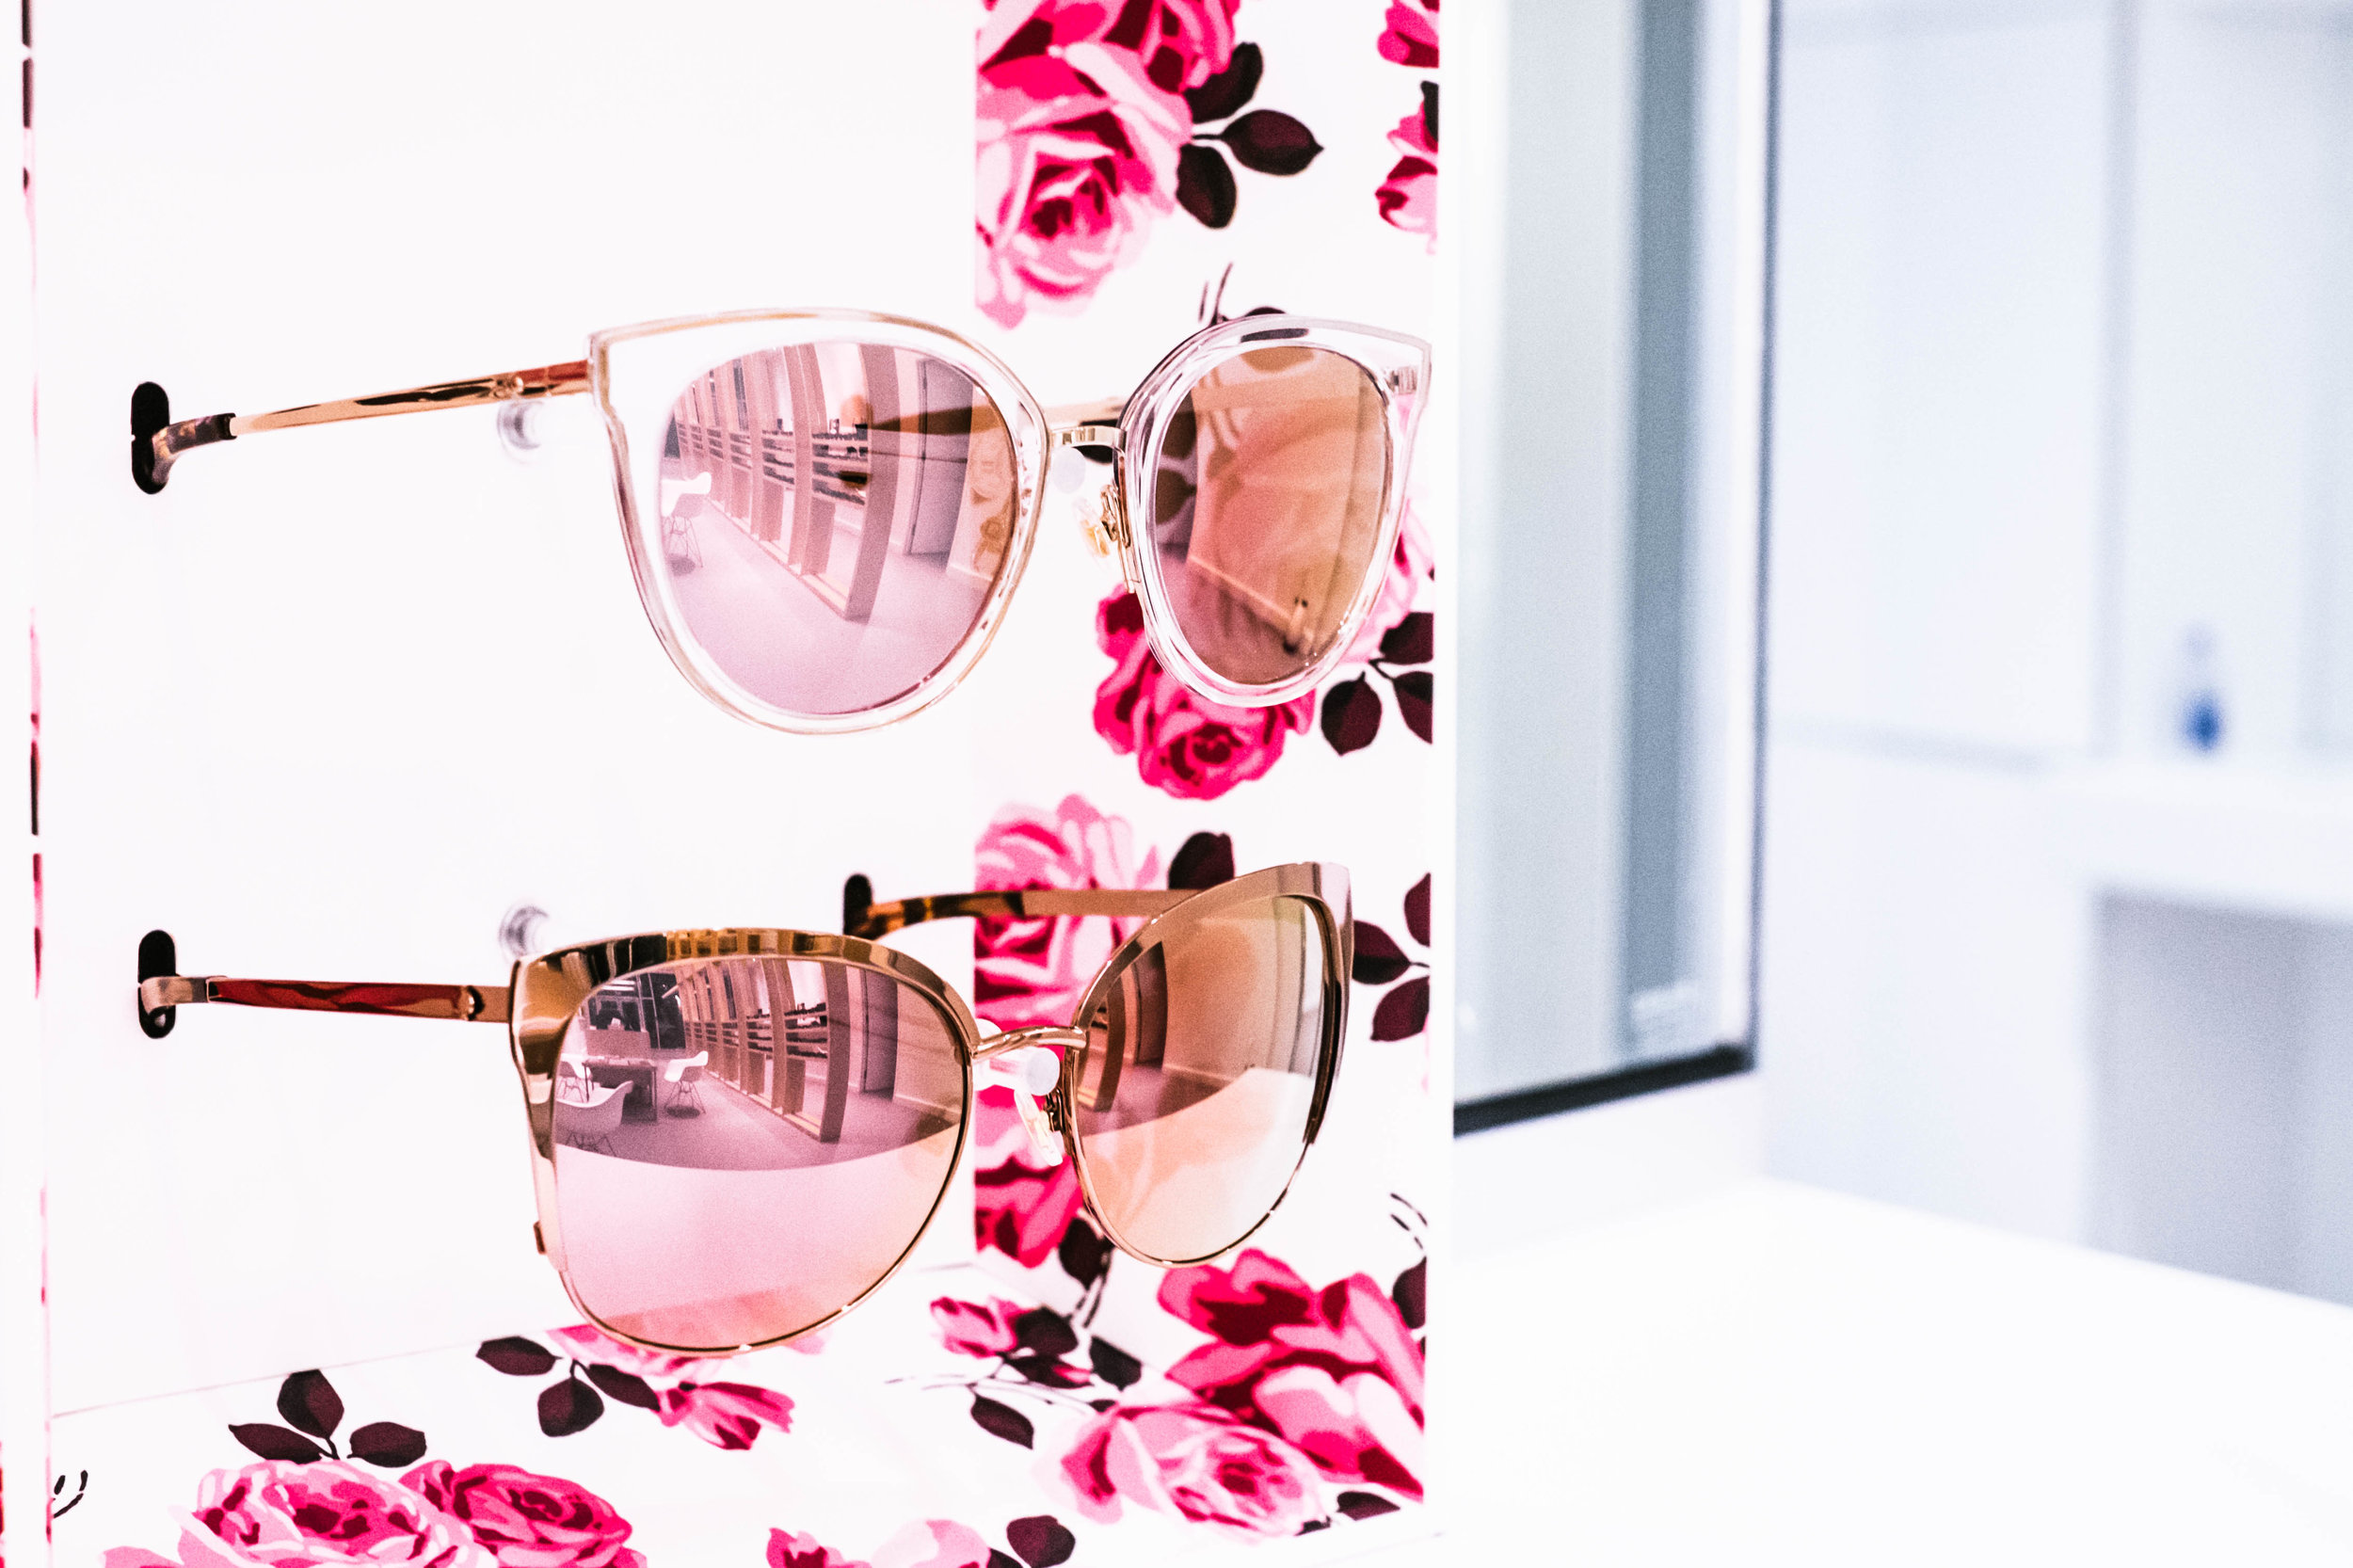 Optics specialists - opt.specializes in finding the best fashionable eyewear that is functional. From prescription safety glasses for work, blue light filters for your electronic screens to prescription sunglasses for the great outdoors,opt.is here to help in all aspects of your lifestyle.